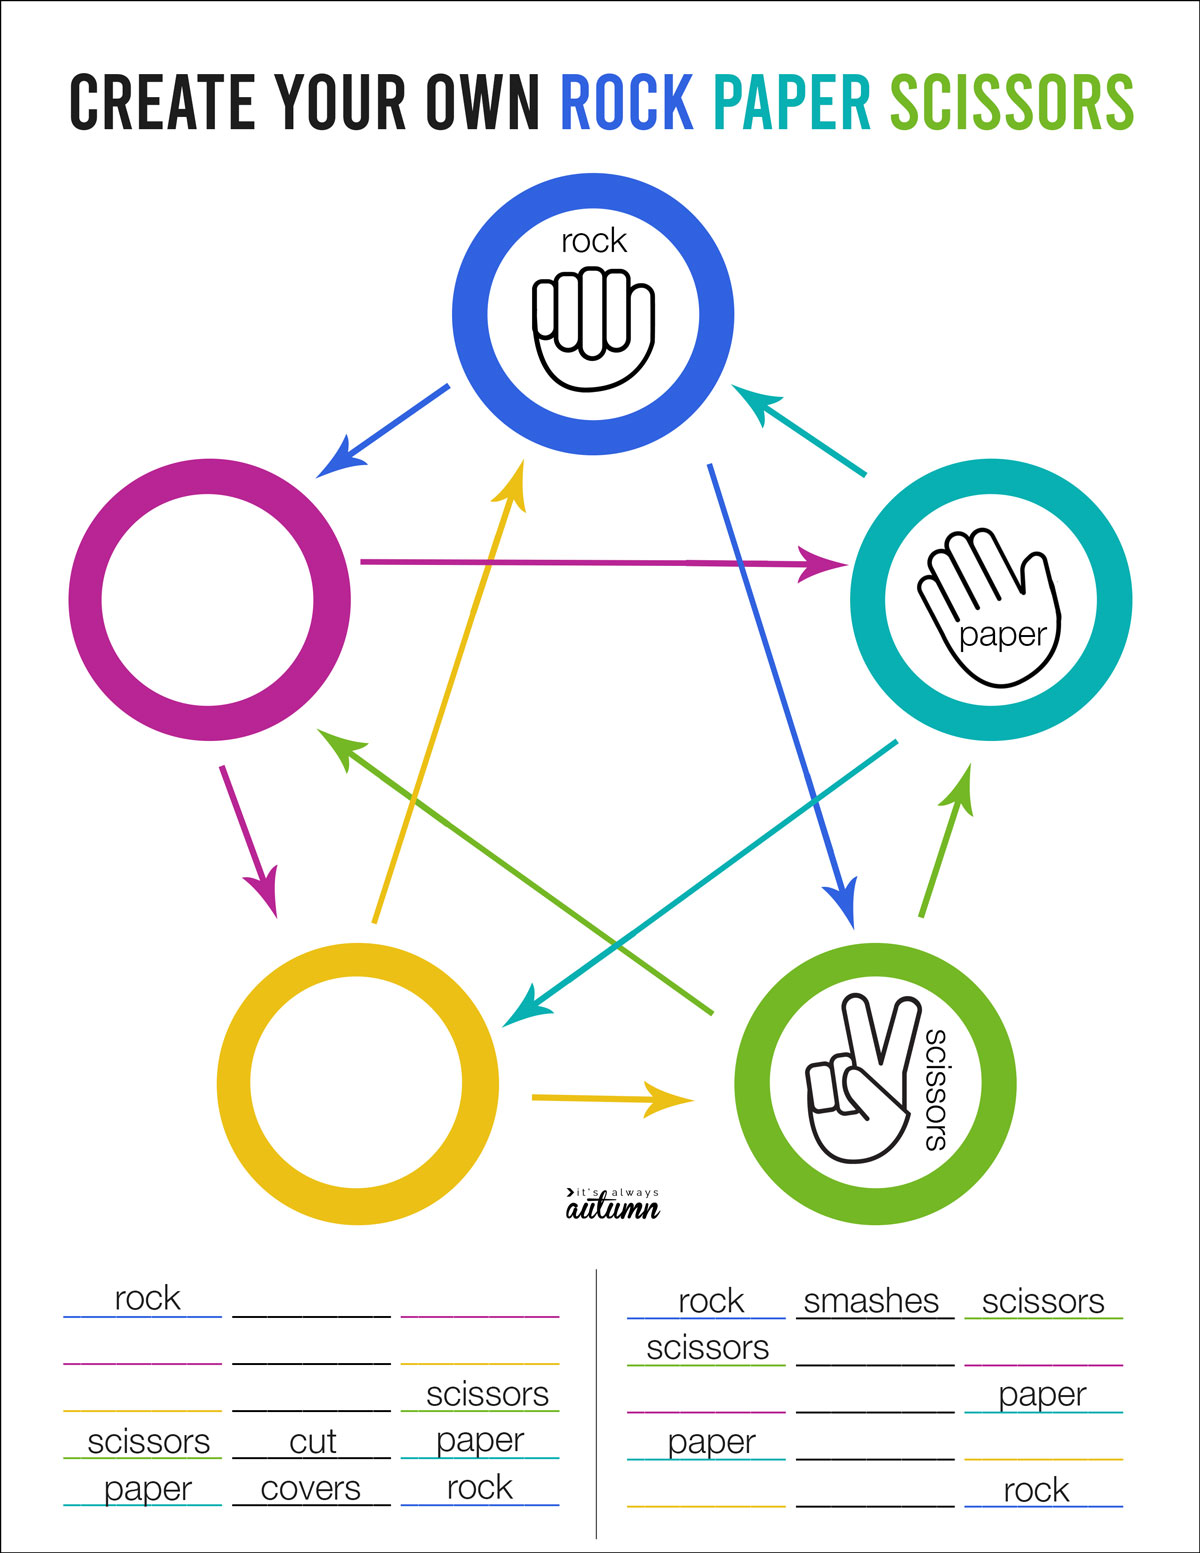 Create your own ULTIMATE rock paper scissors worksheet with 5 options